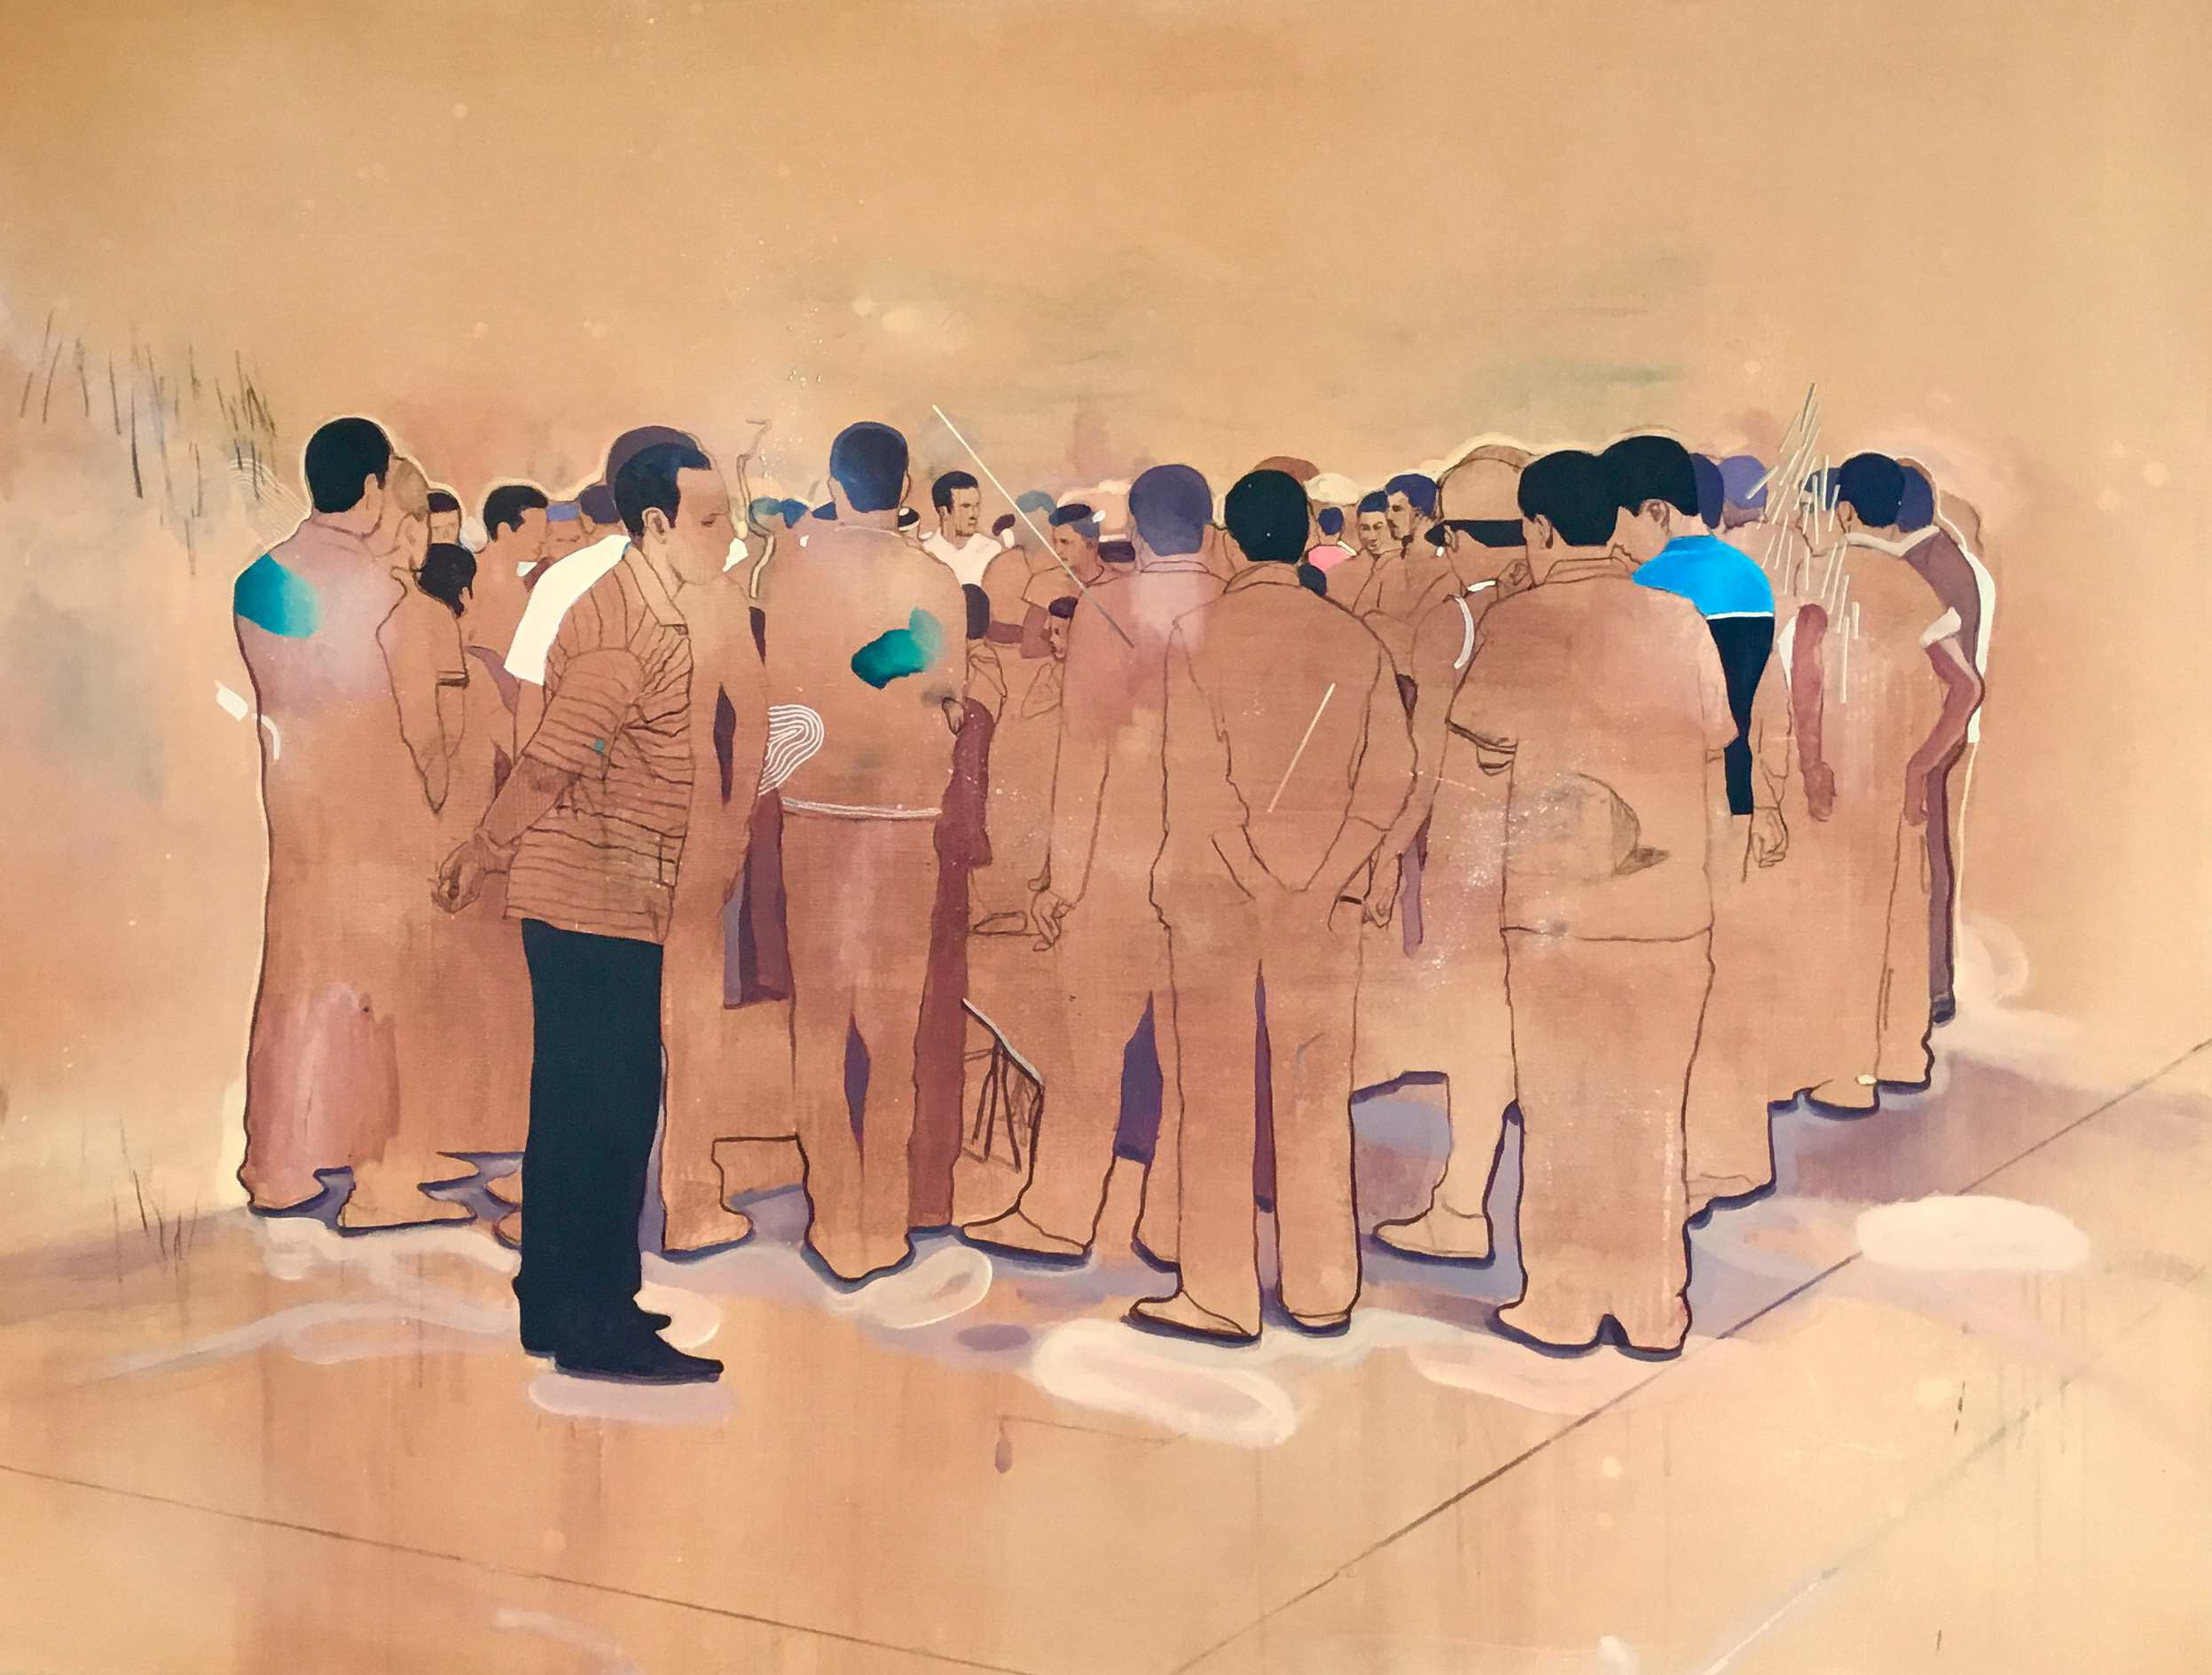 Nabil El Makhloufi, 'La Foule IX', 2016, Oil, acrylic and charcoal on canvas, 170 x 130 cm, Courtesy of L'atelier 21